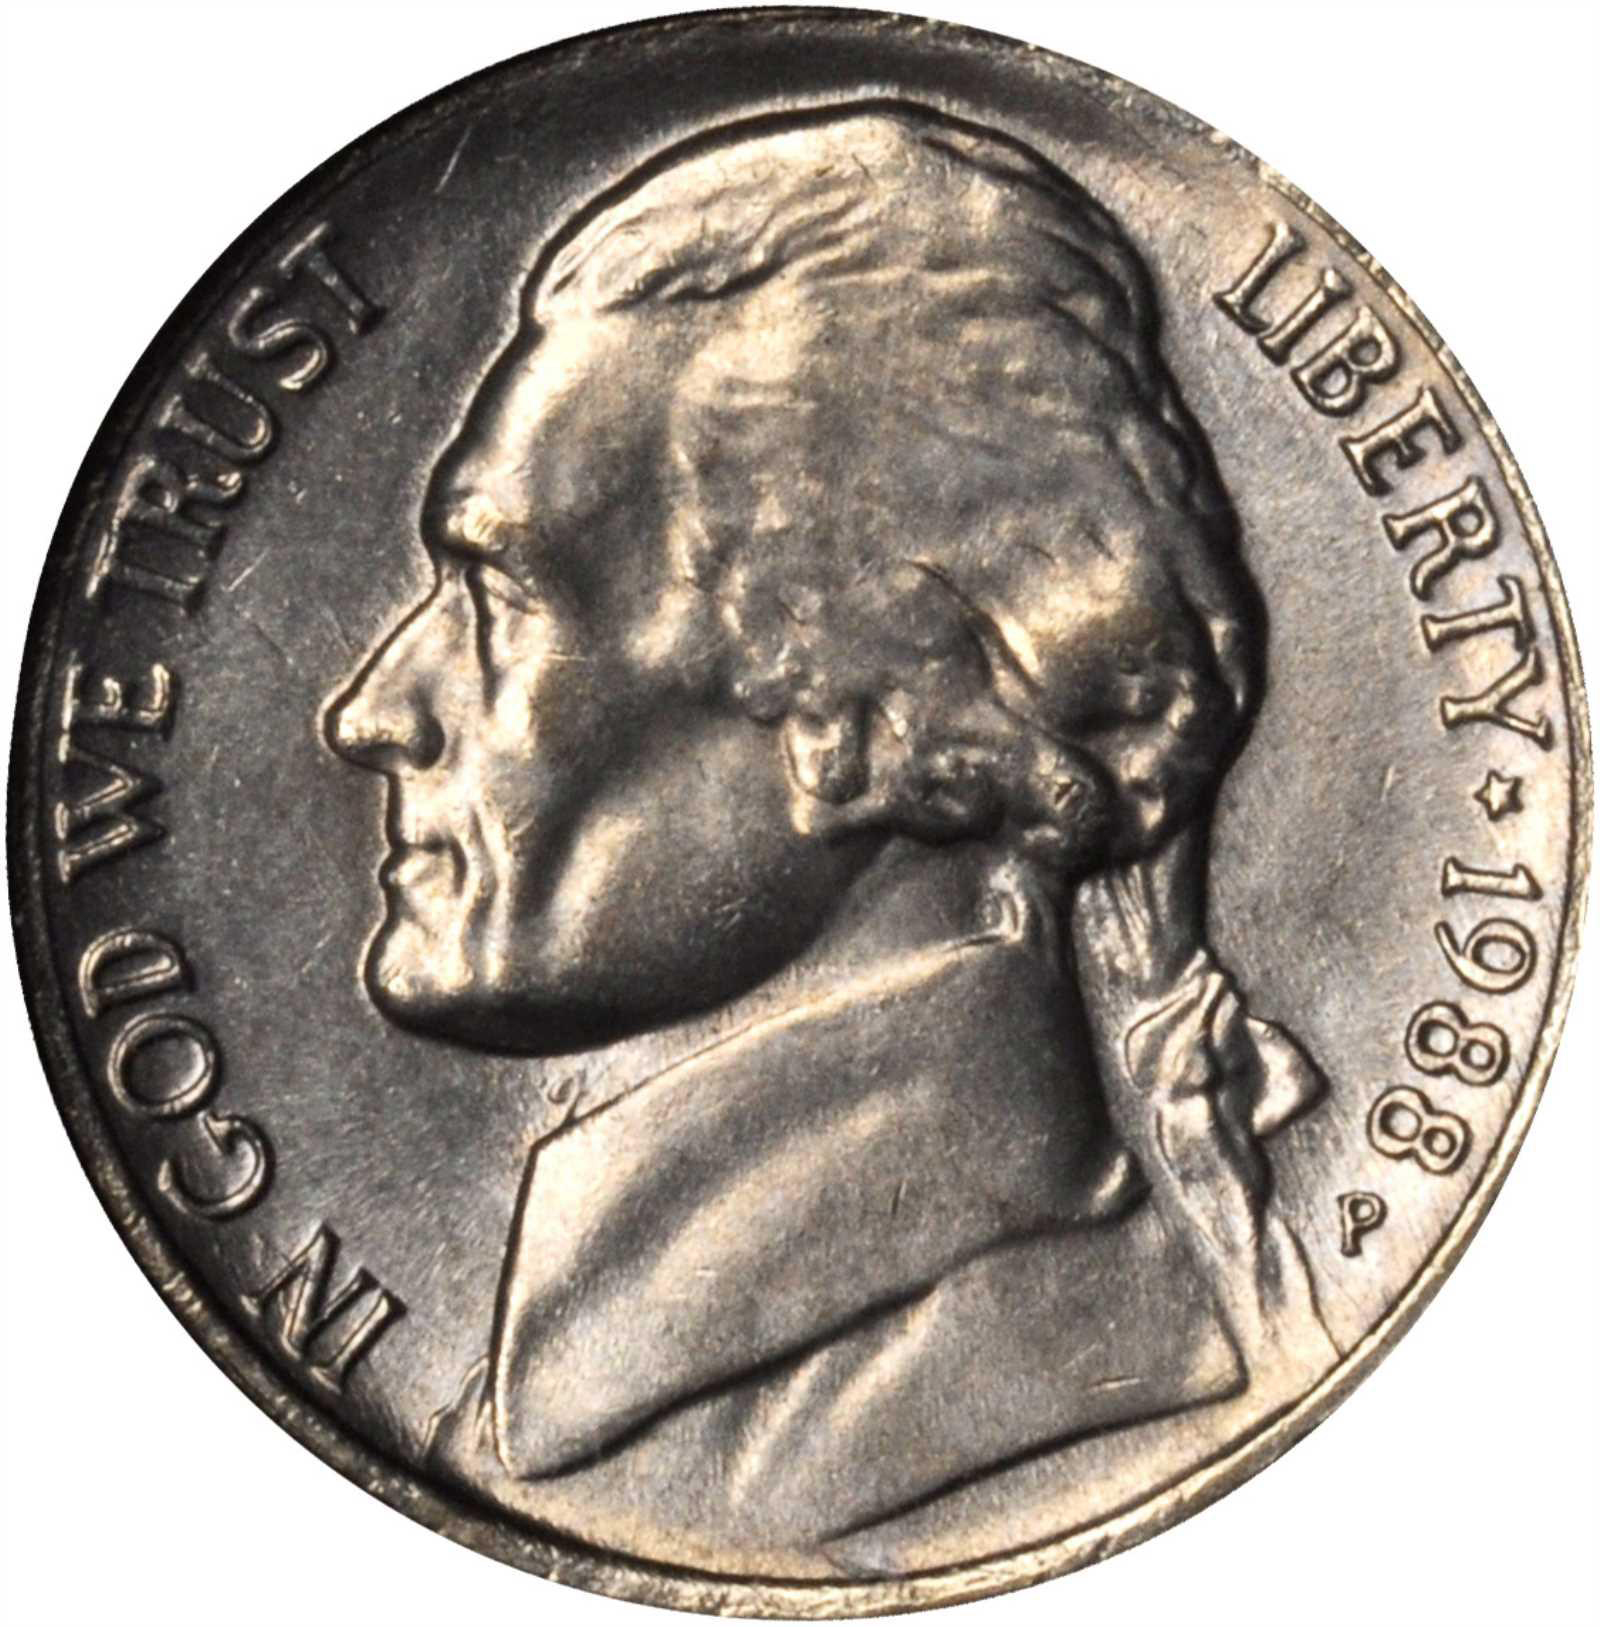 1988-P Jefferson Nickel | Sell & Auction Modern Coins